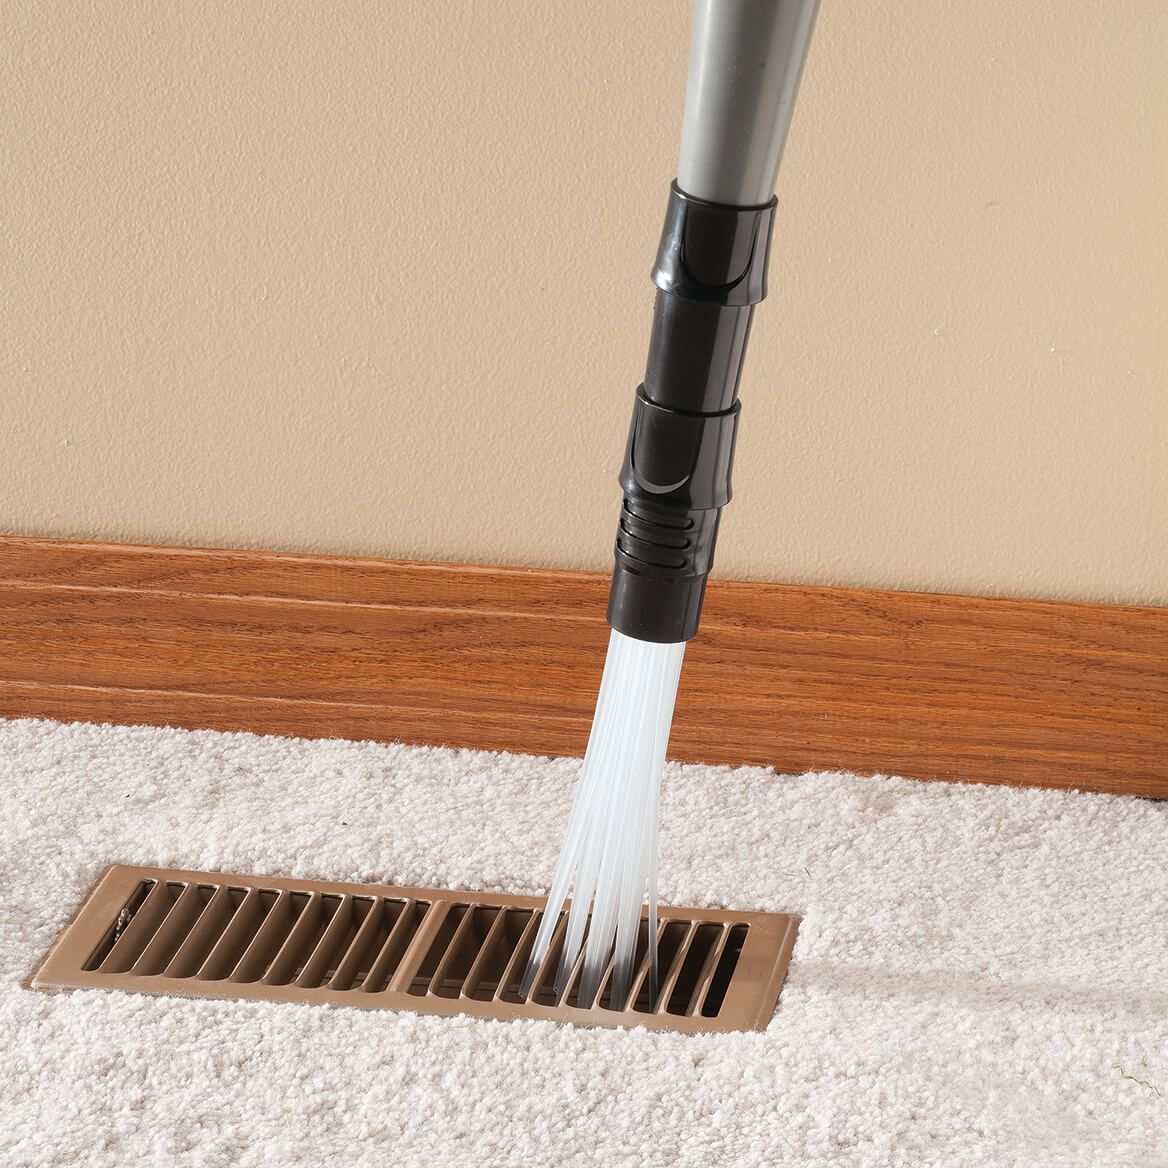 Dust and Dirt Remover Vacuum Attachment-364583